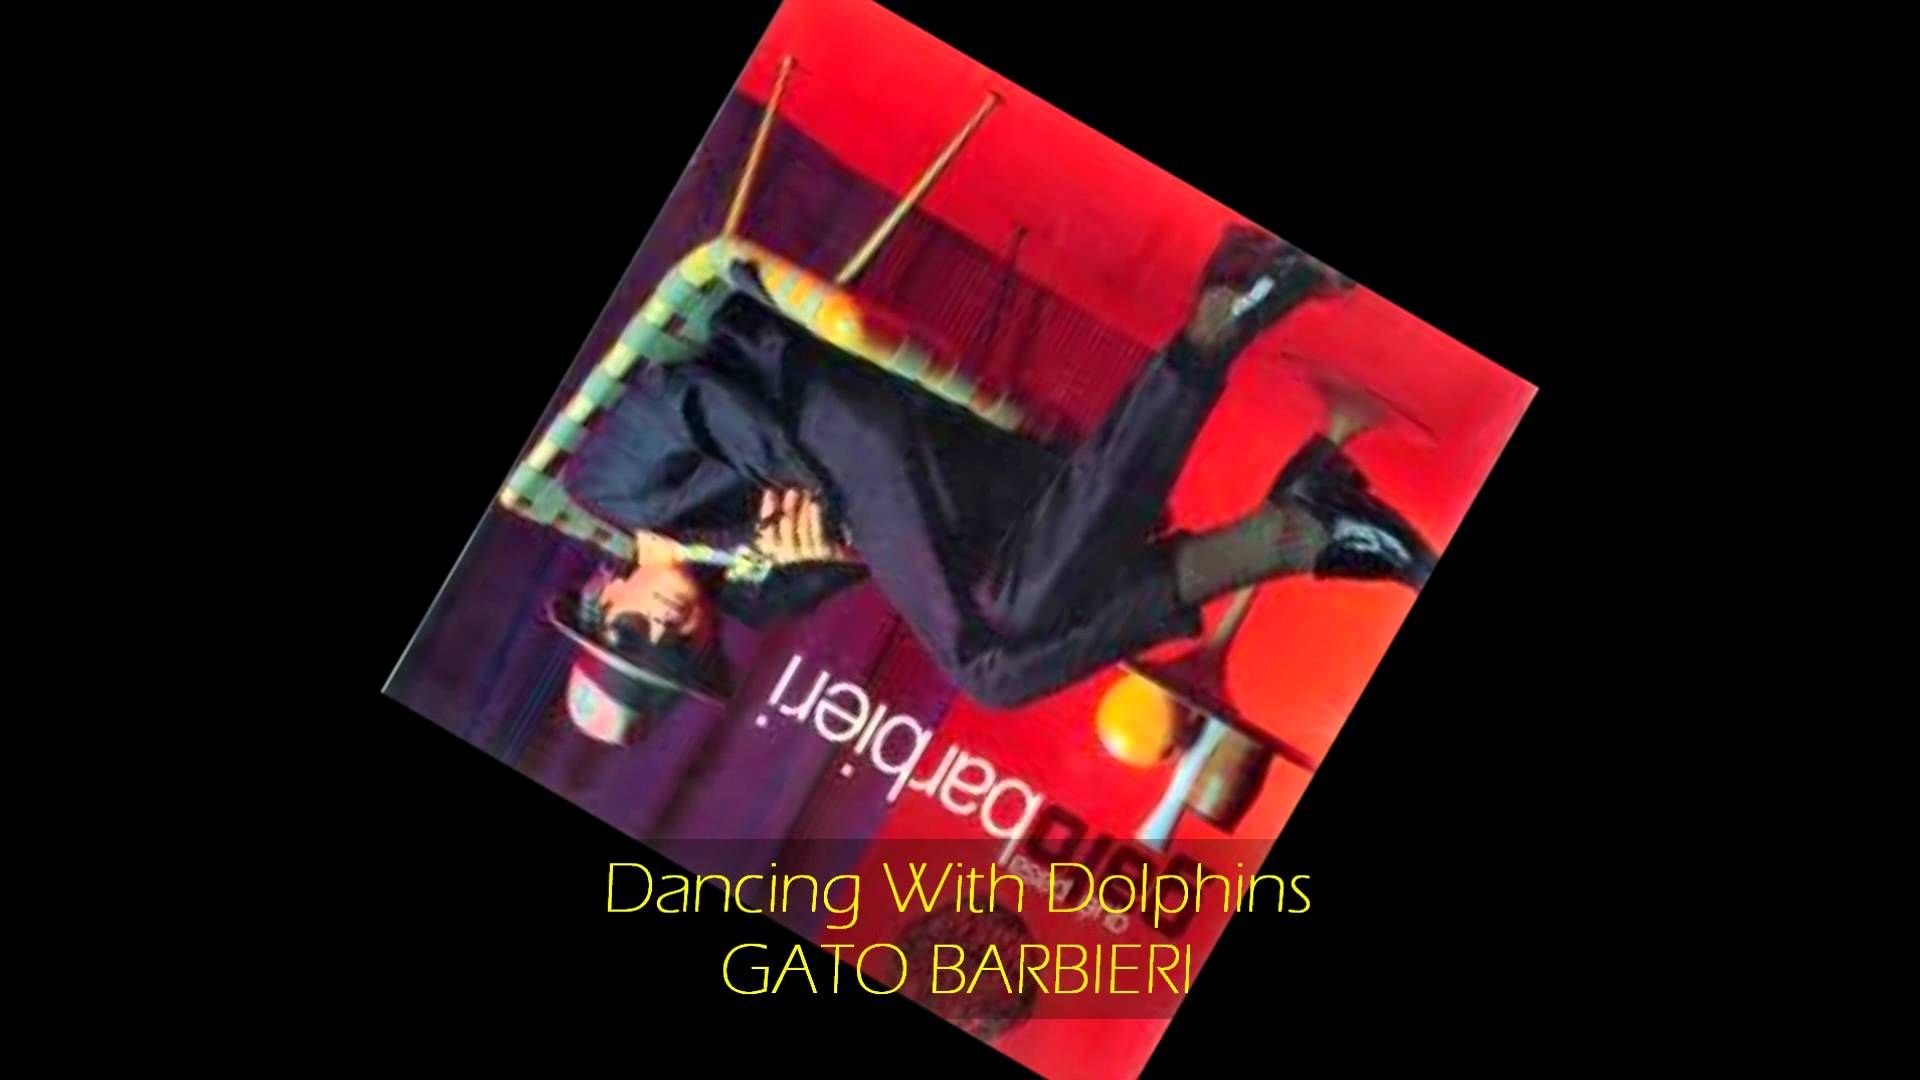 Gato Barbieri - DANCING WITH DOLPHINS